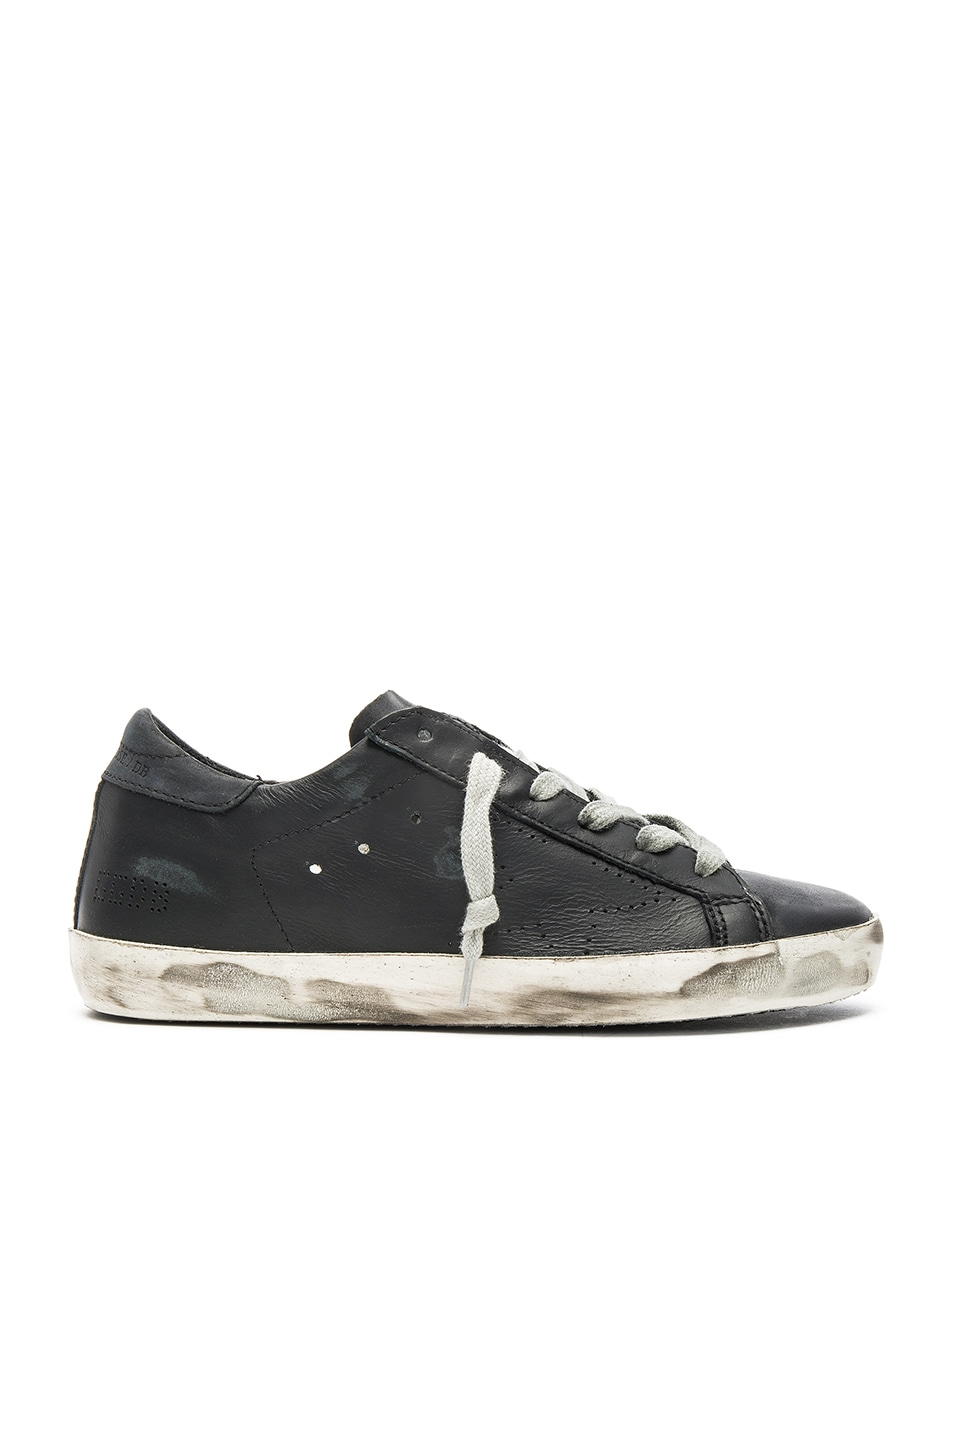 Image 1 of Golden Goose Leather Superstar Low in Black Skate